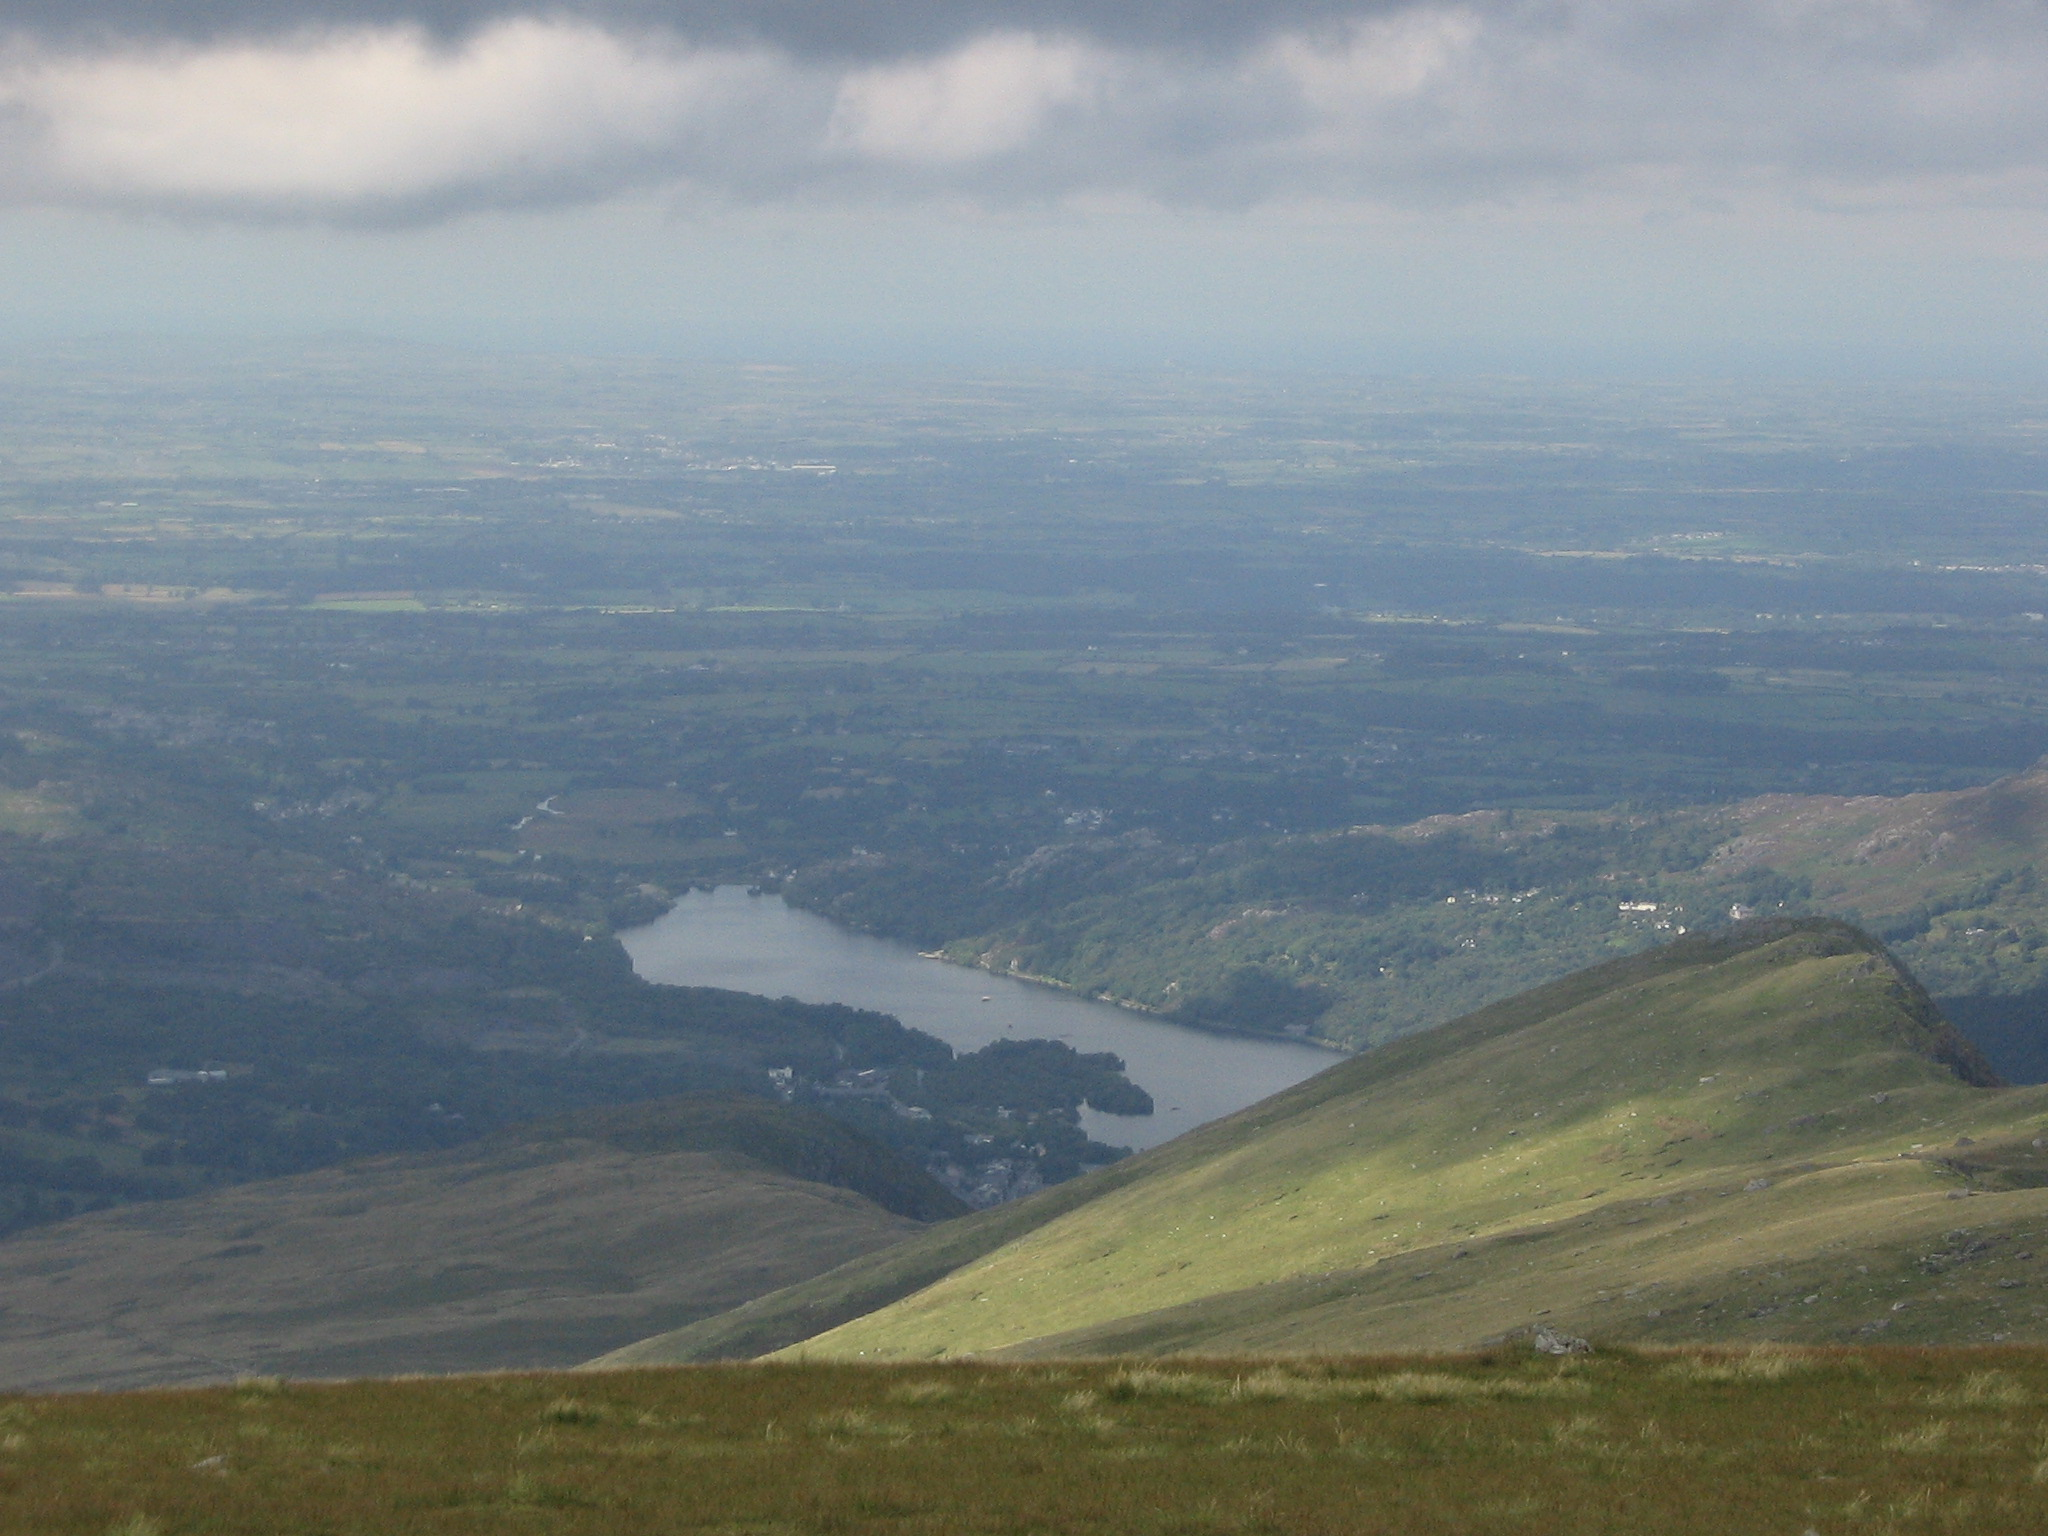 View from the top of Snowdon.